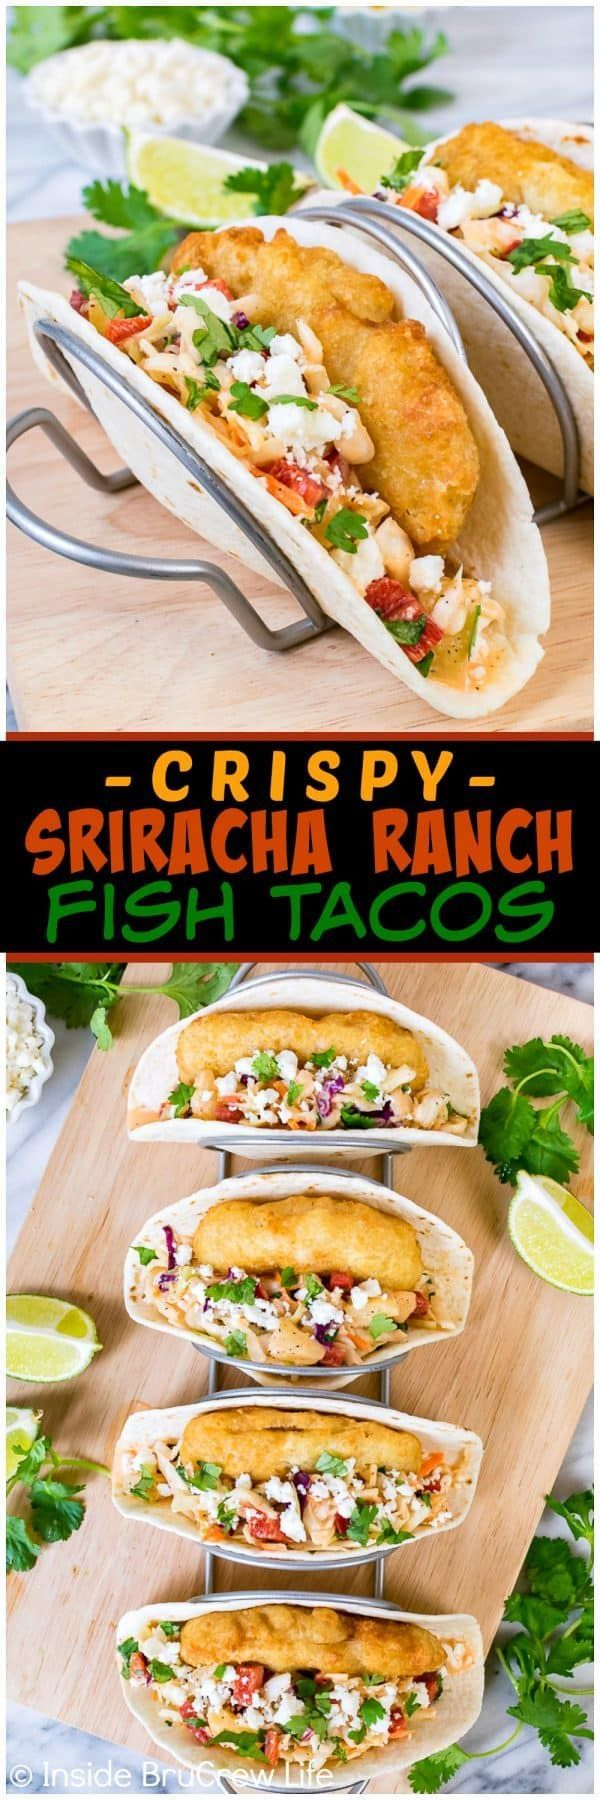 Crispy Sriracha Ranch Fish Tacos - crispy fish fillets topped with a sweet and spicy coleslaw makes an easy dinner. Great recipe to make for busy nights! #fishtacos #sriracha #coleslaw #seapak #sponsored